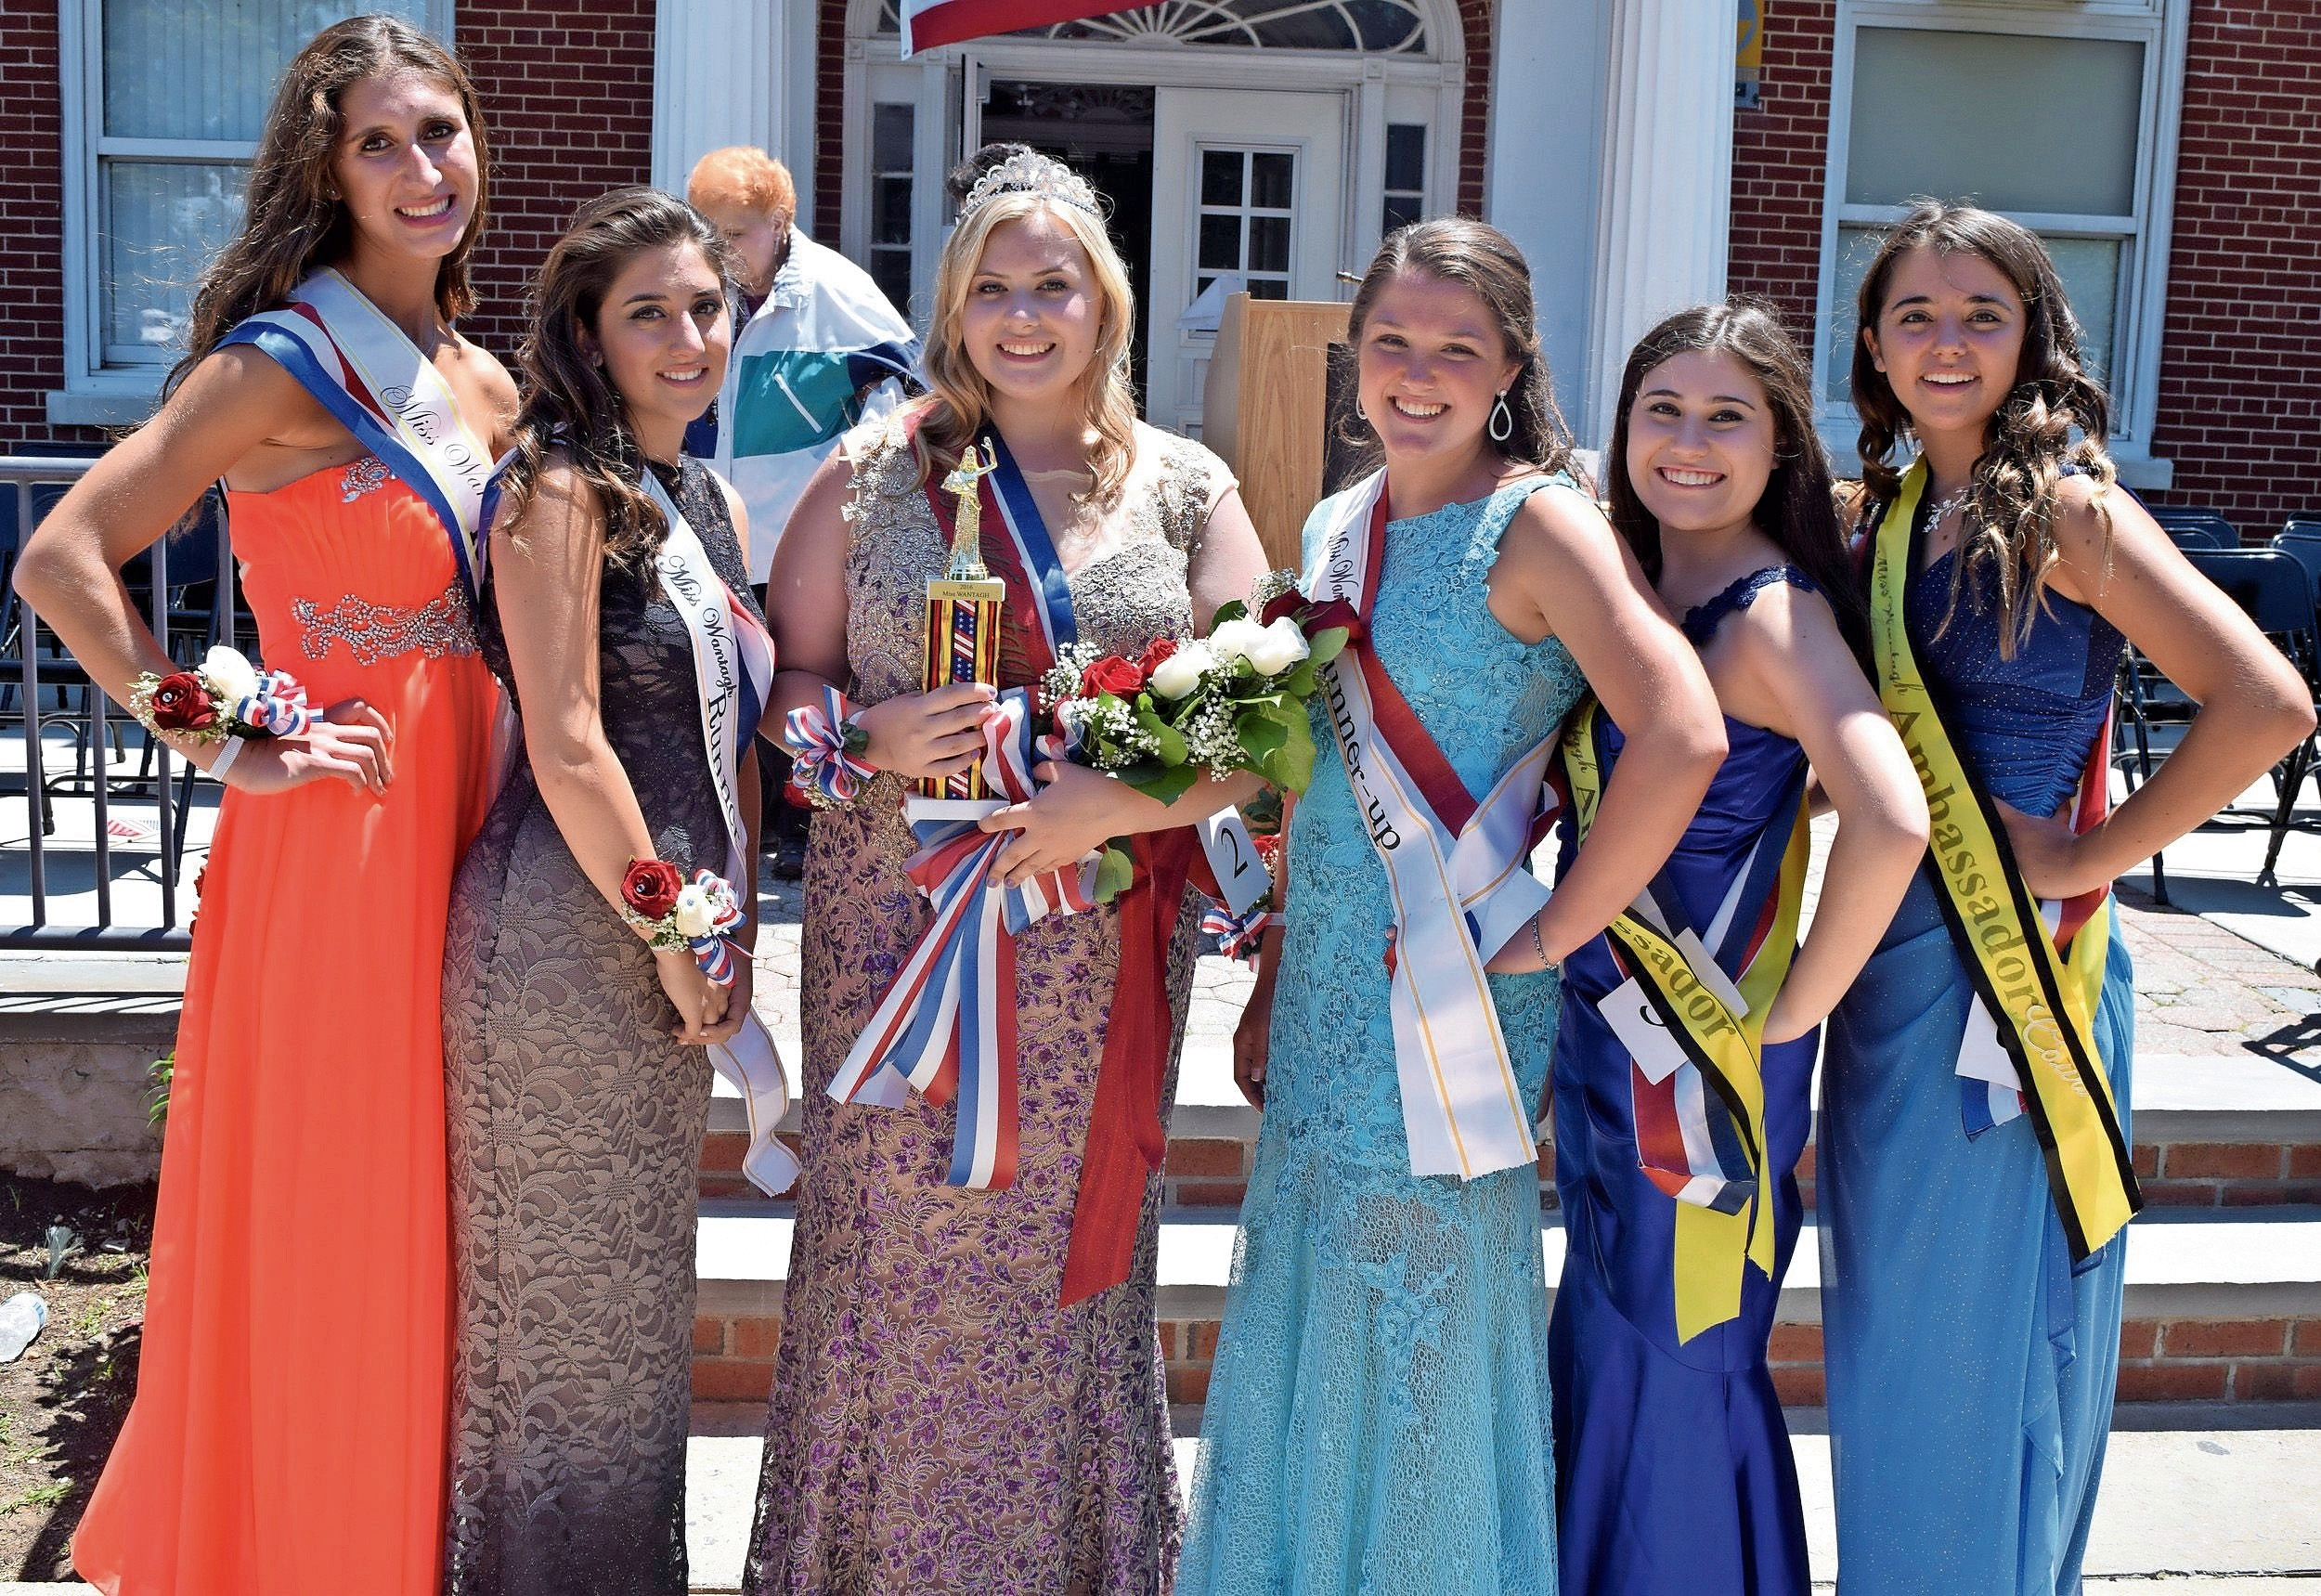 The Miss Wantagh Court will host the third annual Women of Wantagh recognition event later this month.